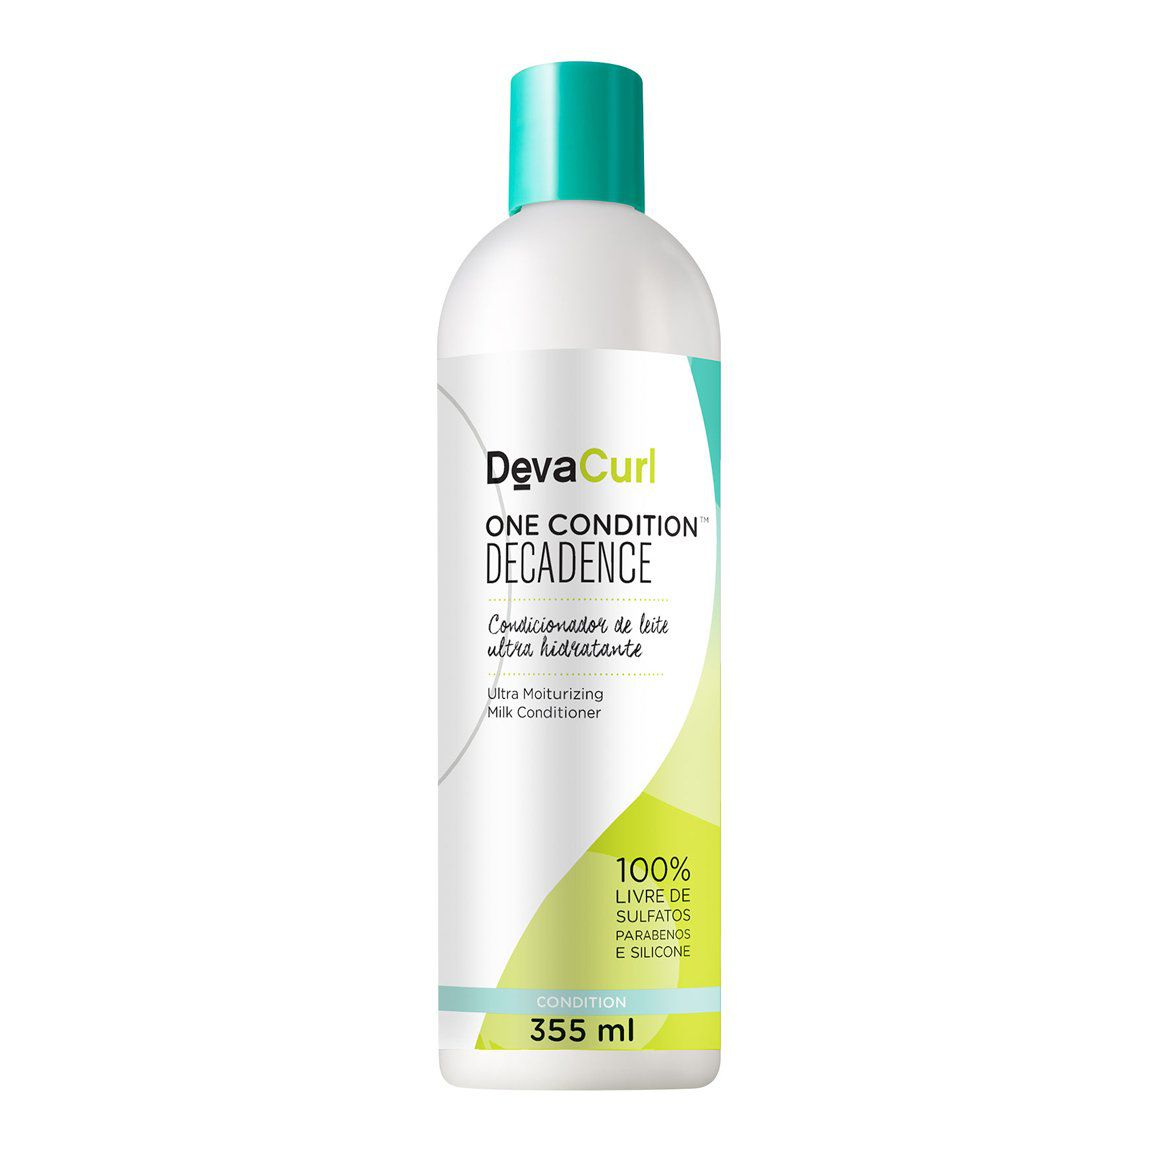 DevaCurl One Condition Decadence Condicionador 355ml